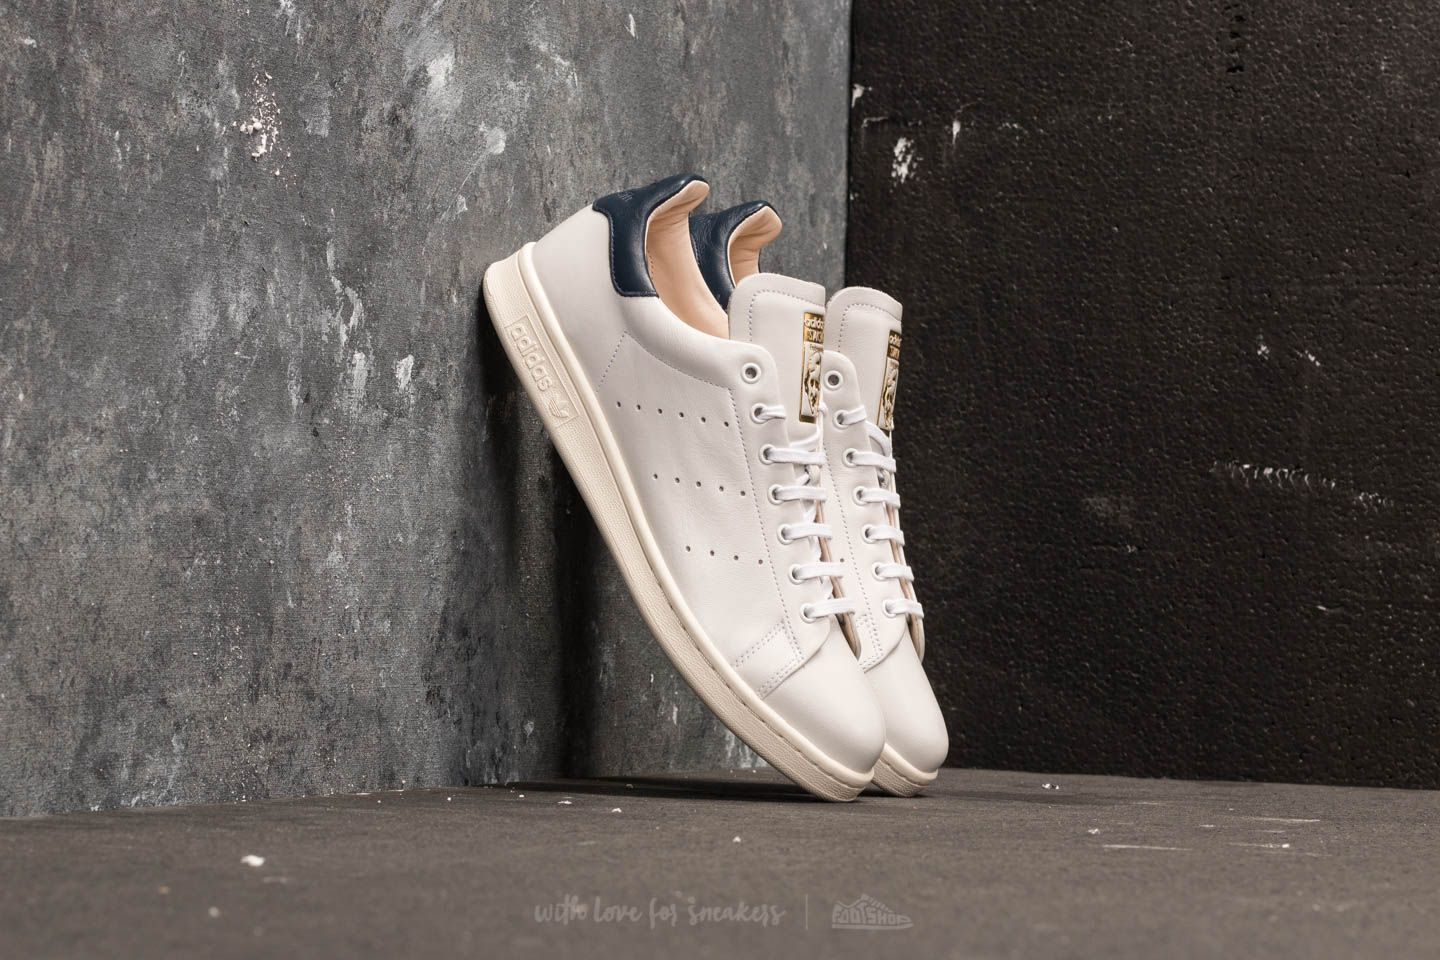 Moški čevlji adidas Stan Smith Recon Ftw White/ Ftw White/ Collegiate Navy